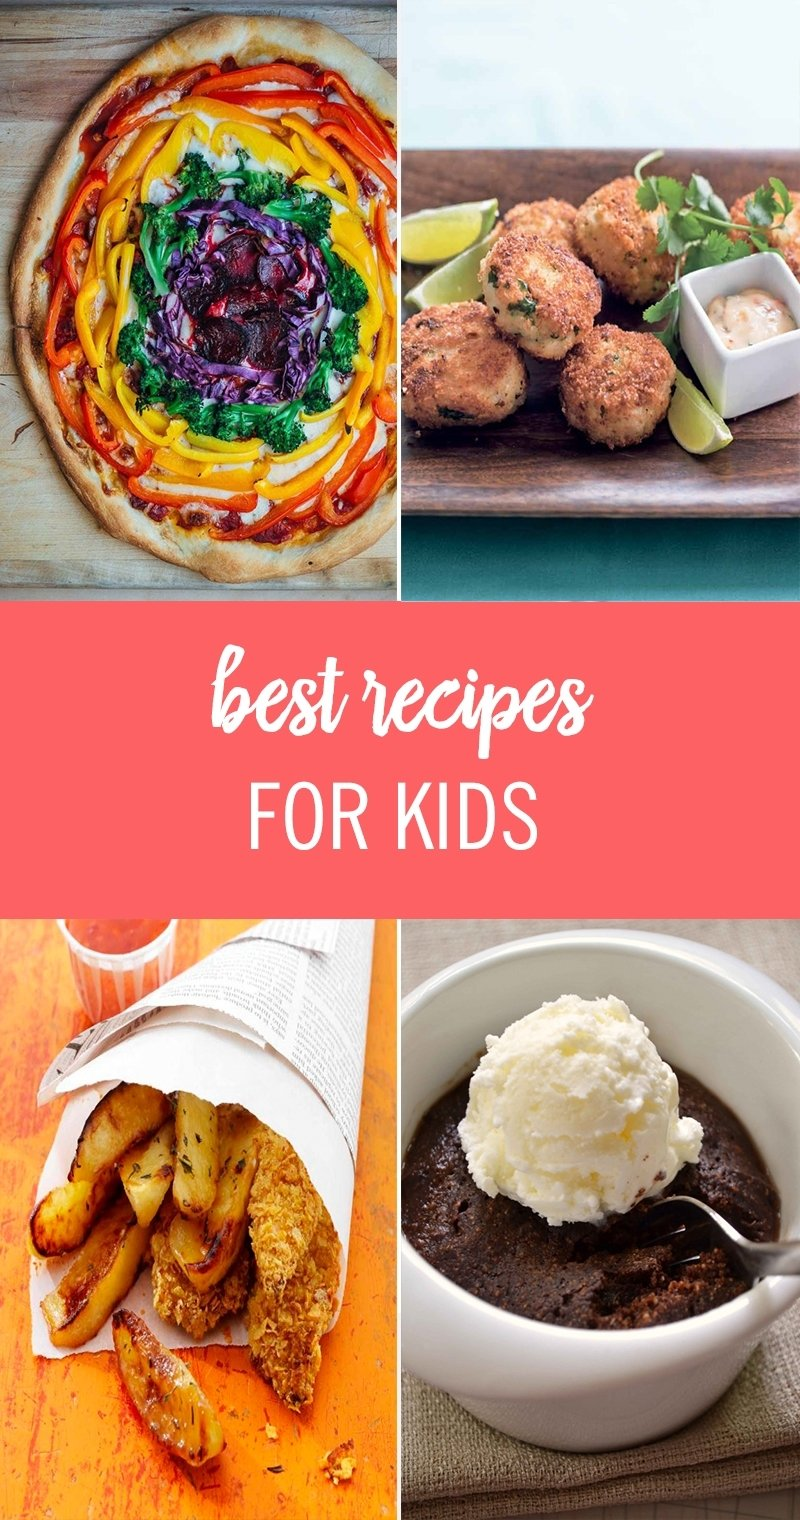 10 Stylish Fun Cooking Ideas For Kids cooking for kids 50 best recipes for kids and picky eaters 19 2021